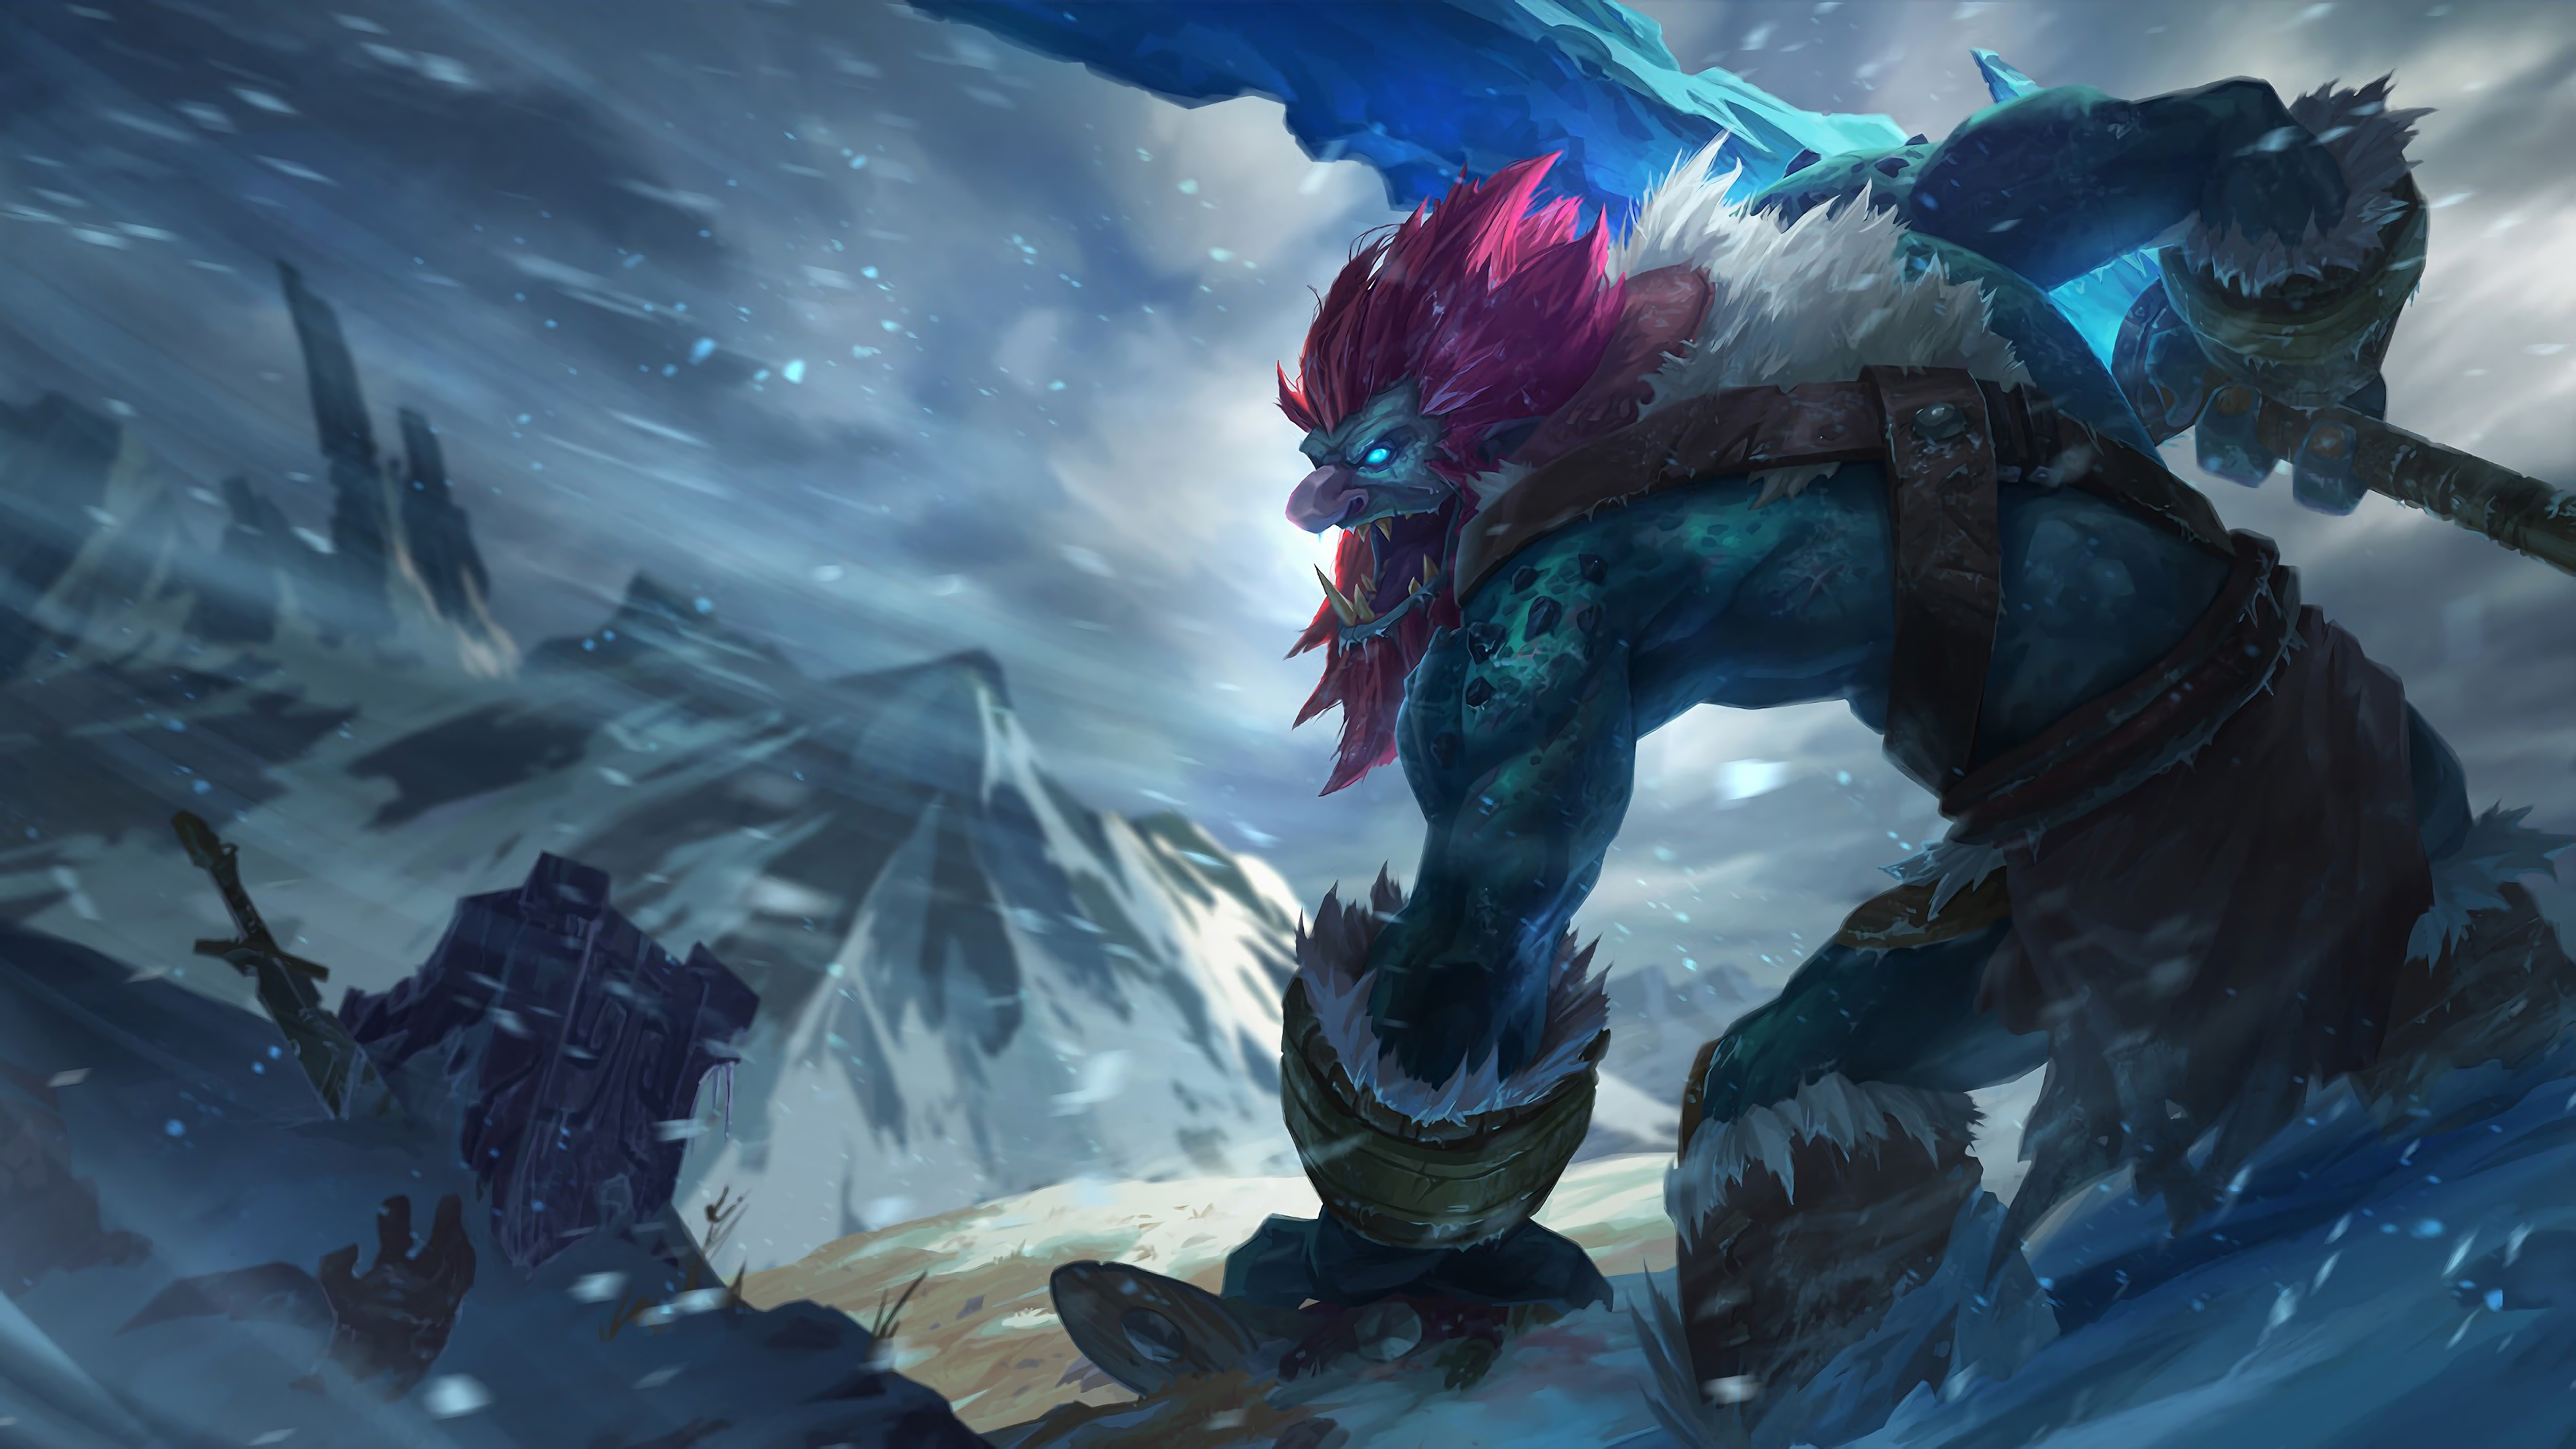 trundle lol splash art league of legends 1574098583 - Trundle LoL Splash Art League of Legends - Trundle, league of legends